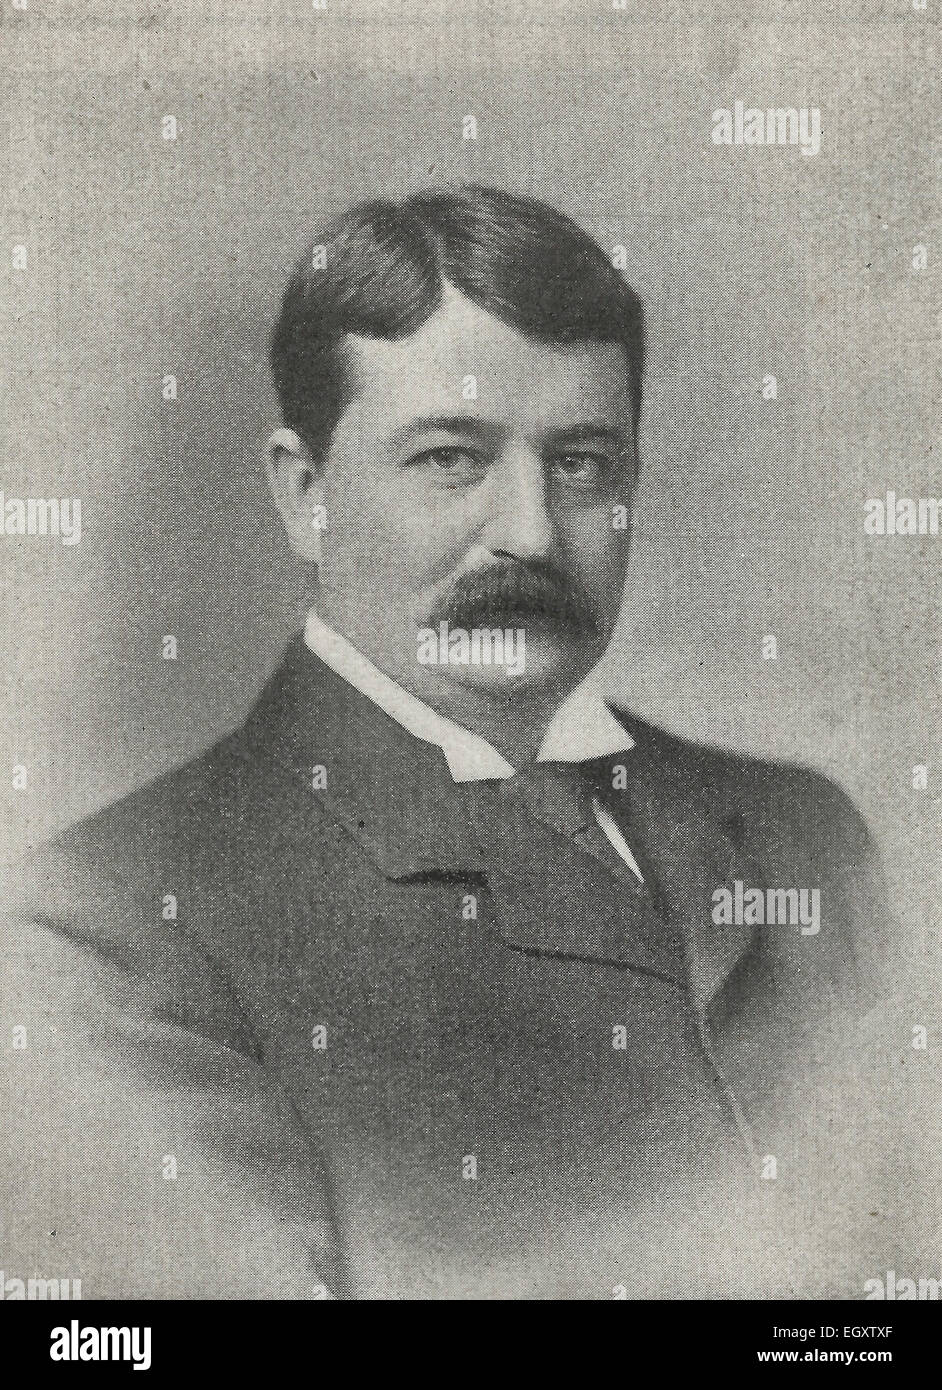 Honourable W. P. Schreiner, C.M.G., Prime Minister of Cape Colony, South Africa, circa 1895 - Stock Image